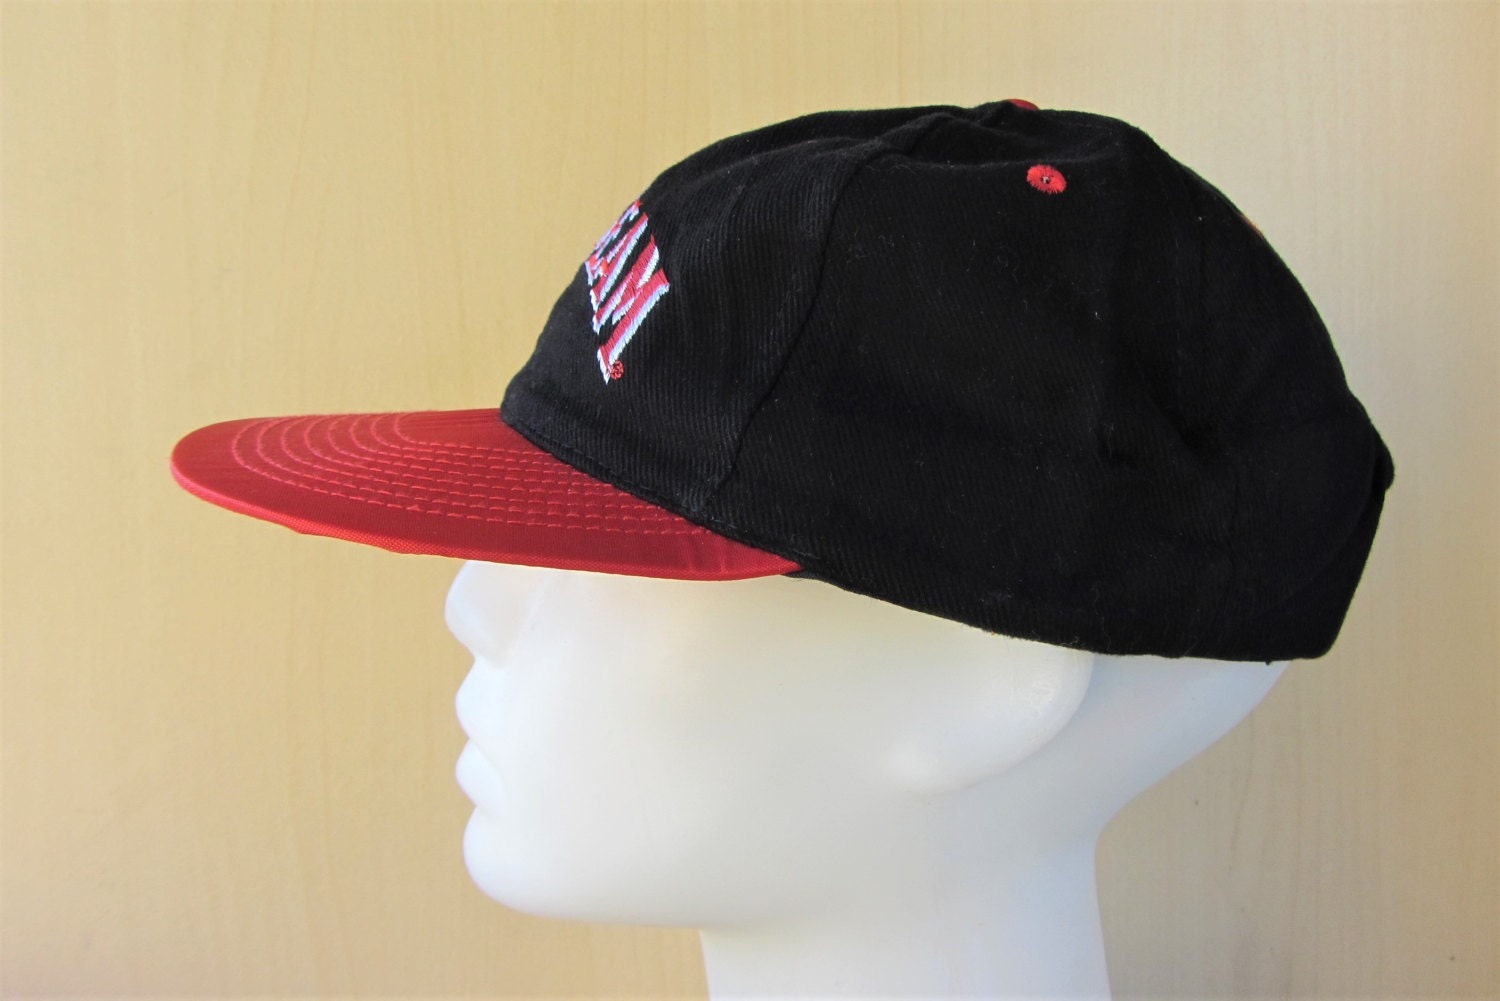 92d78e8228e JIM BEAM Kentucky Bourbon Whiskey Liquor Promo Vintage 90s Snapback Hat Two  Tone Adjustable Baseball Cap